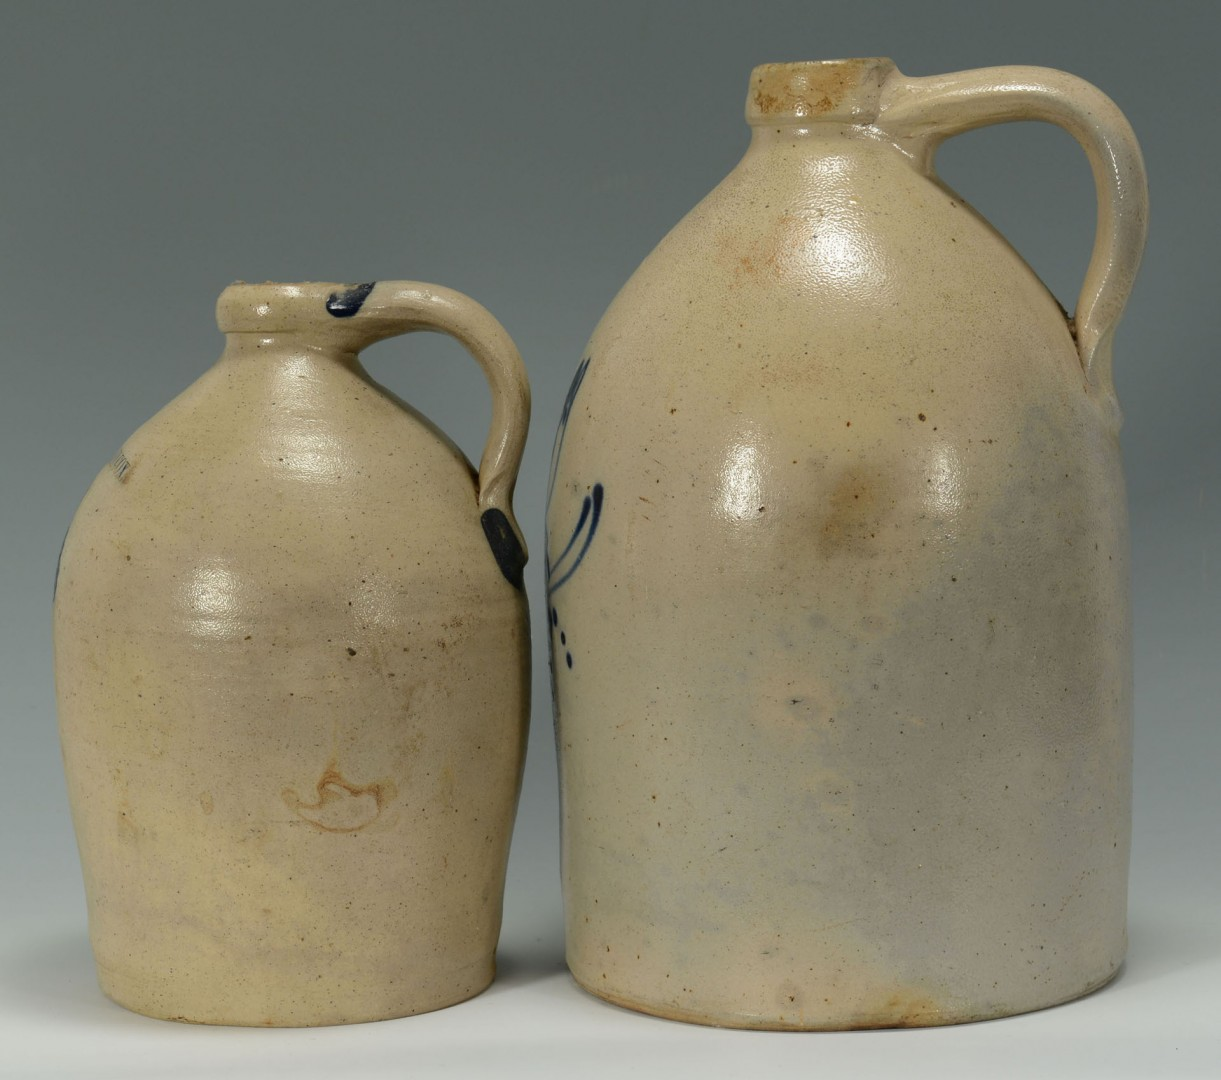 2 Cobalt Decorated Stoneware Jugs, New England